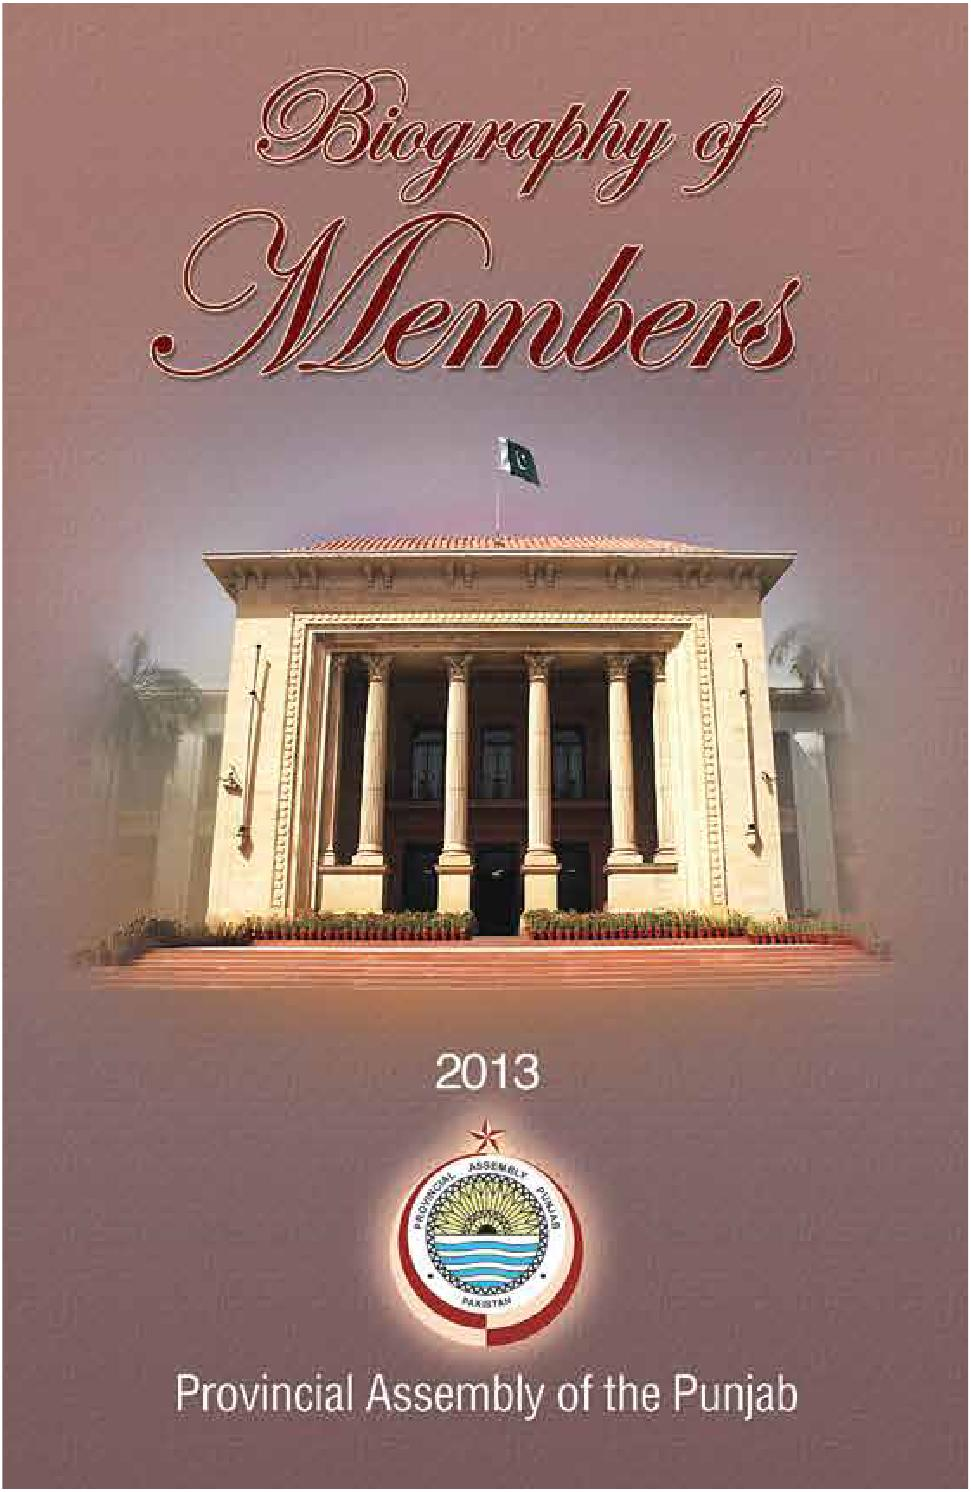 Biography of members 2013 - Punjab Assembly by Yaqub